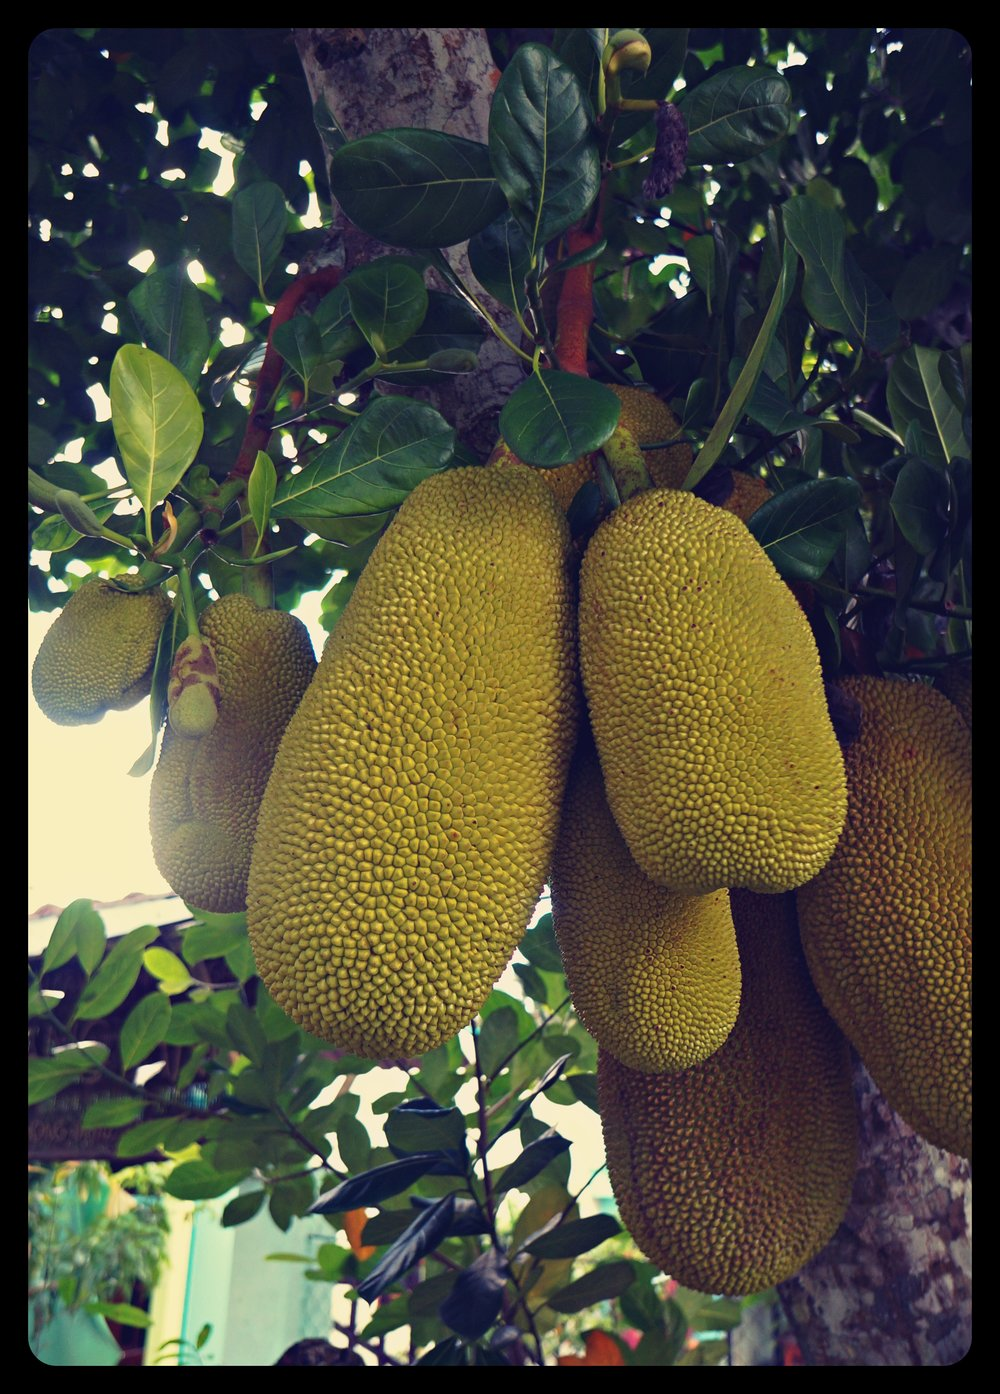 Jackfruit - the biggest fruit growing on a tree